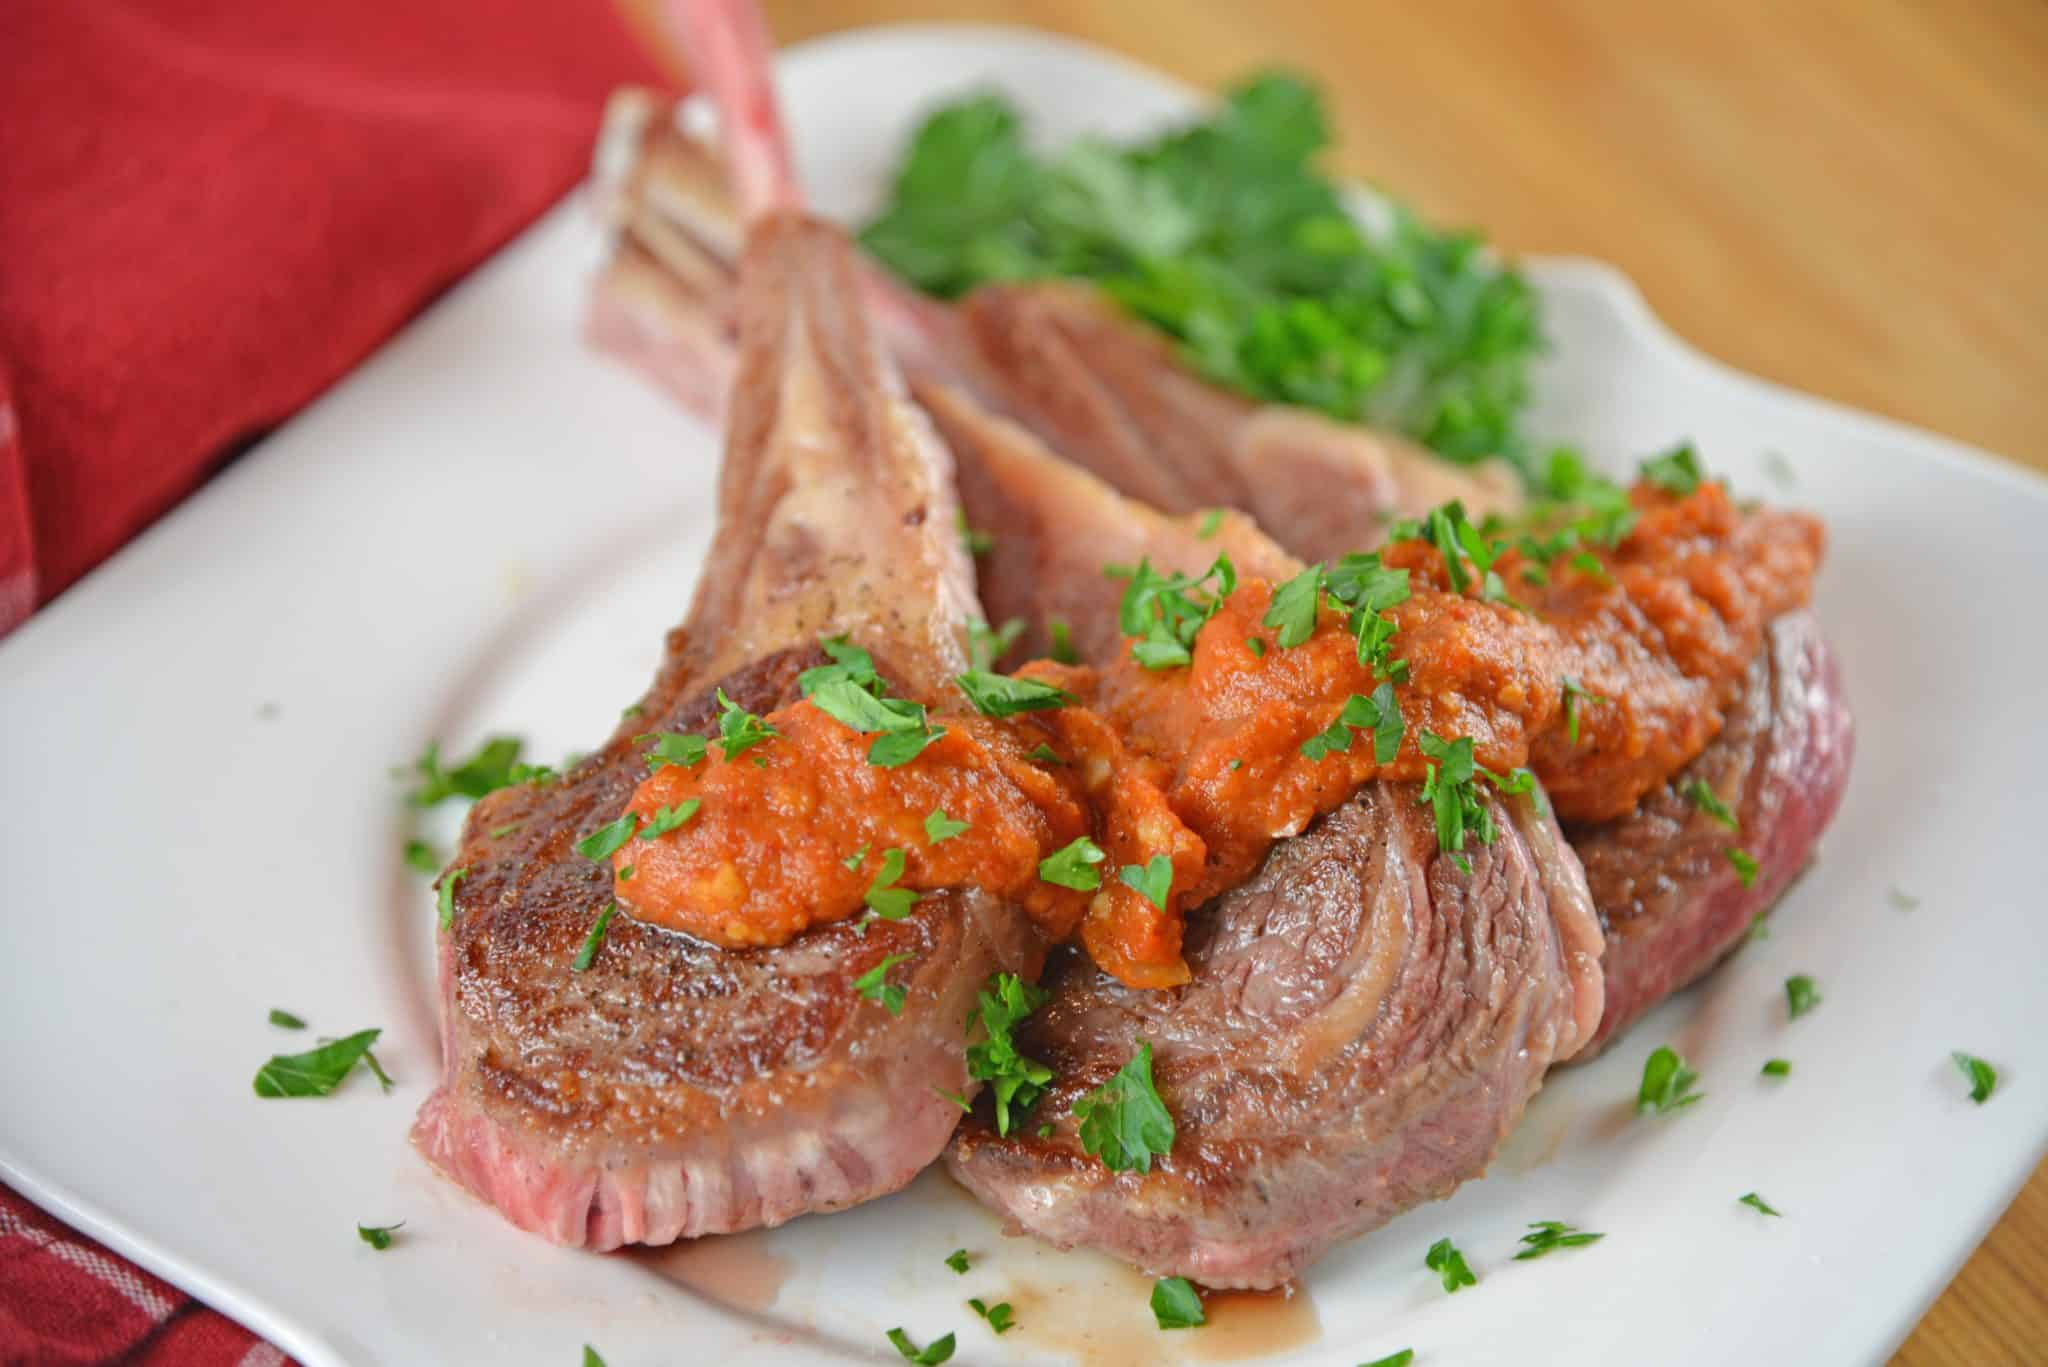 Lamb Chops, also known as Lamb Lollipops, are one of the easiest dinners to make! Only 10 minutes to cook with a smoky romesco sauce and you are ready to dine!